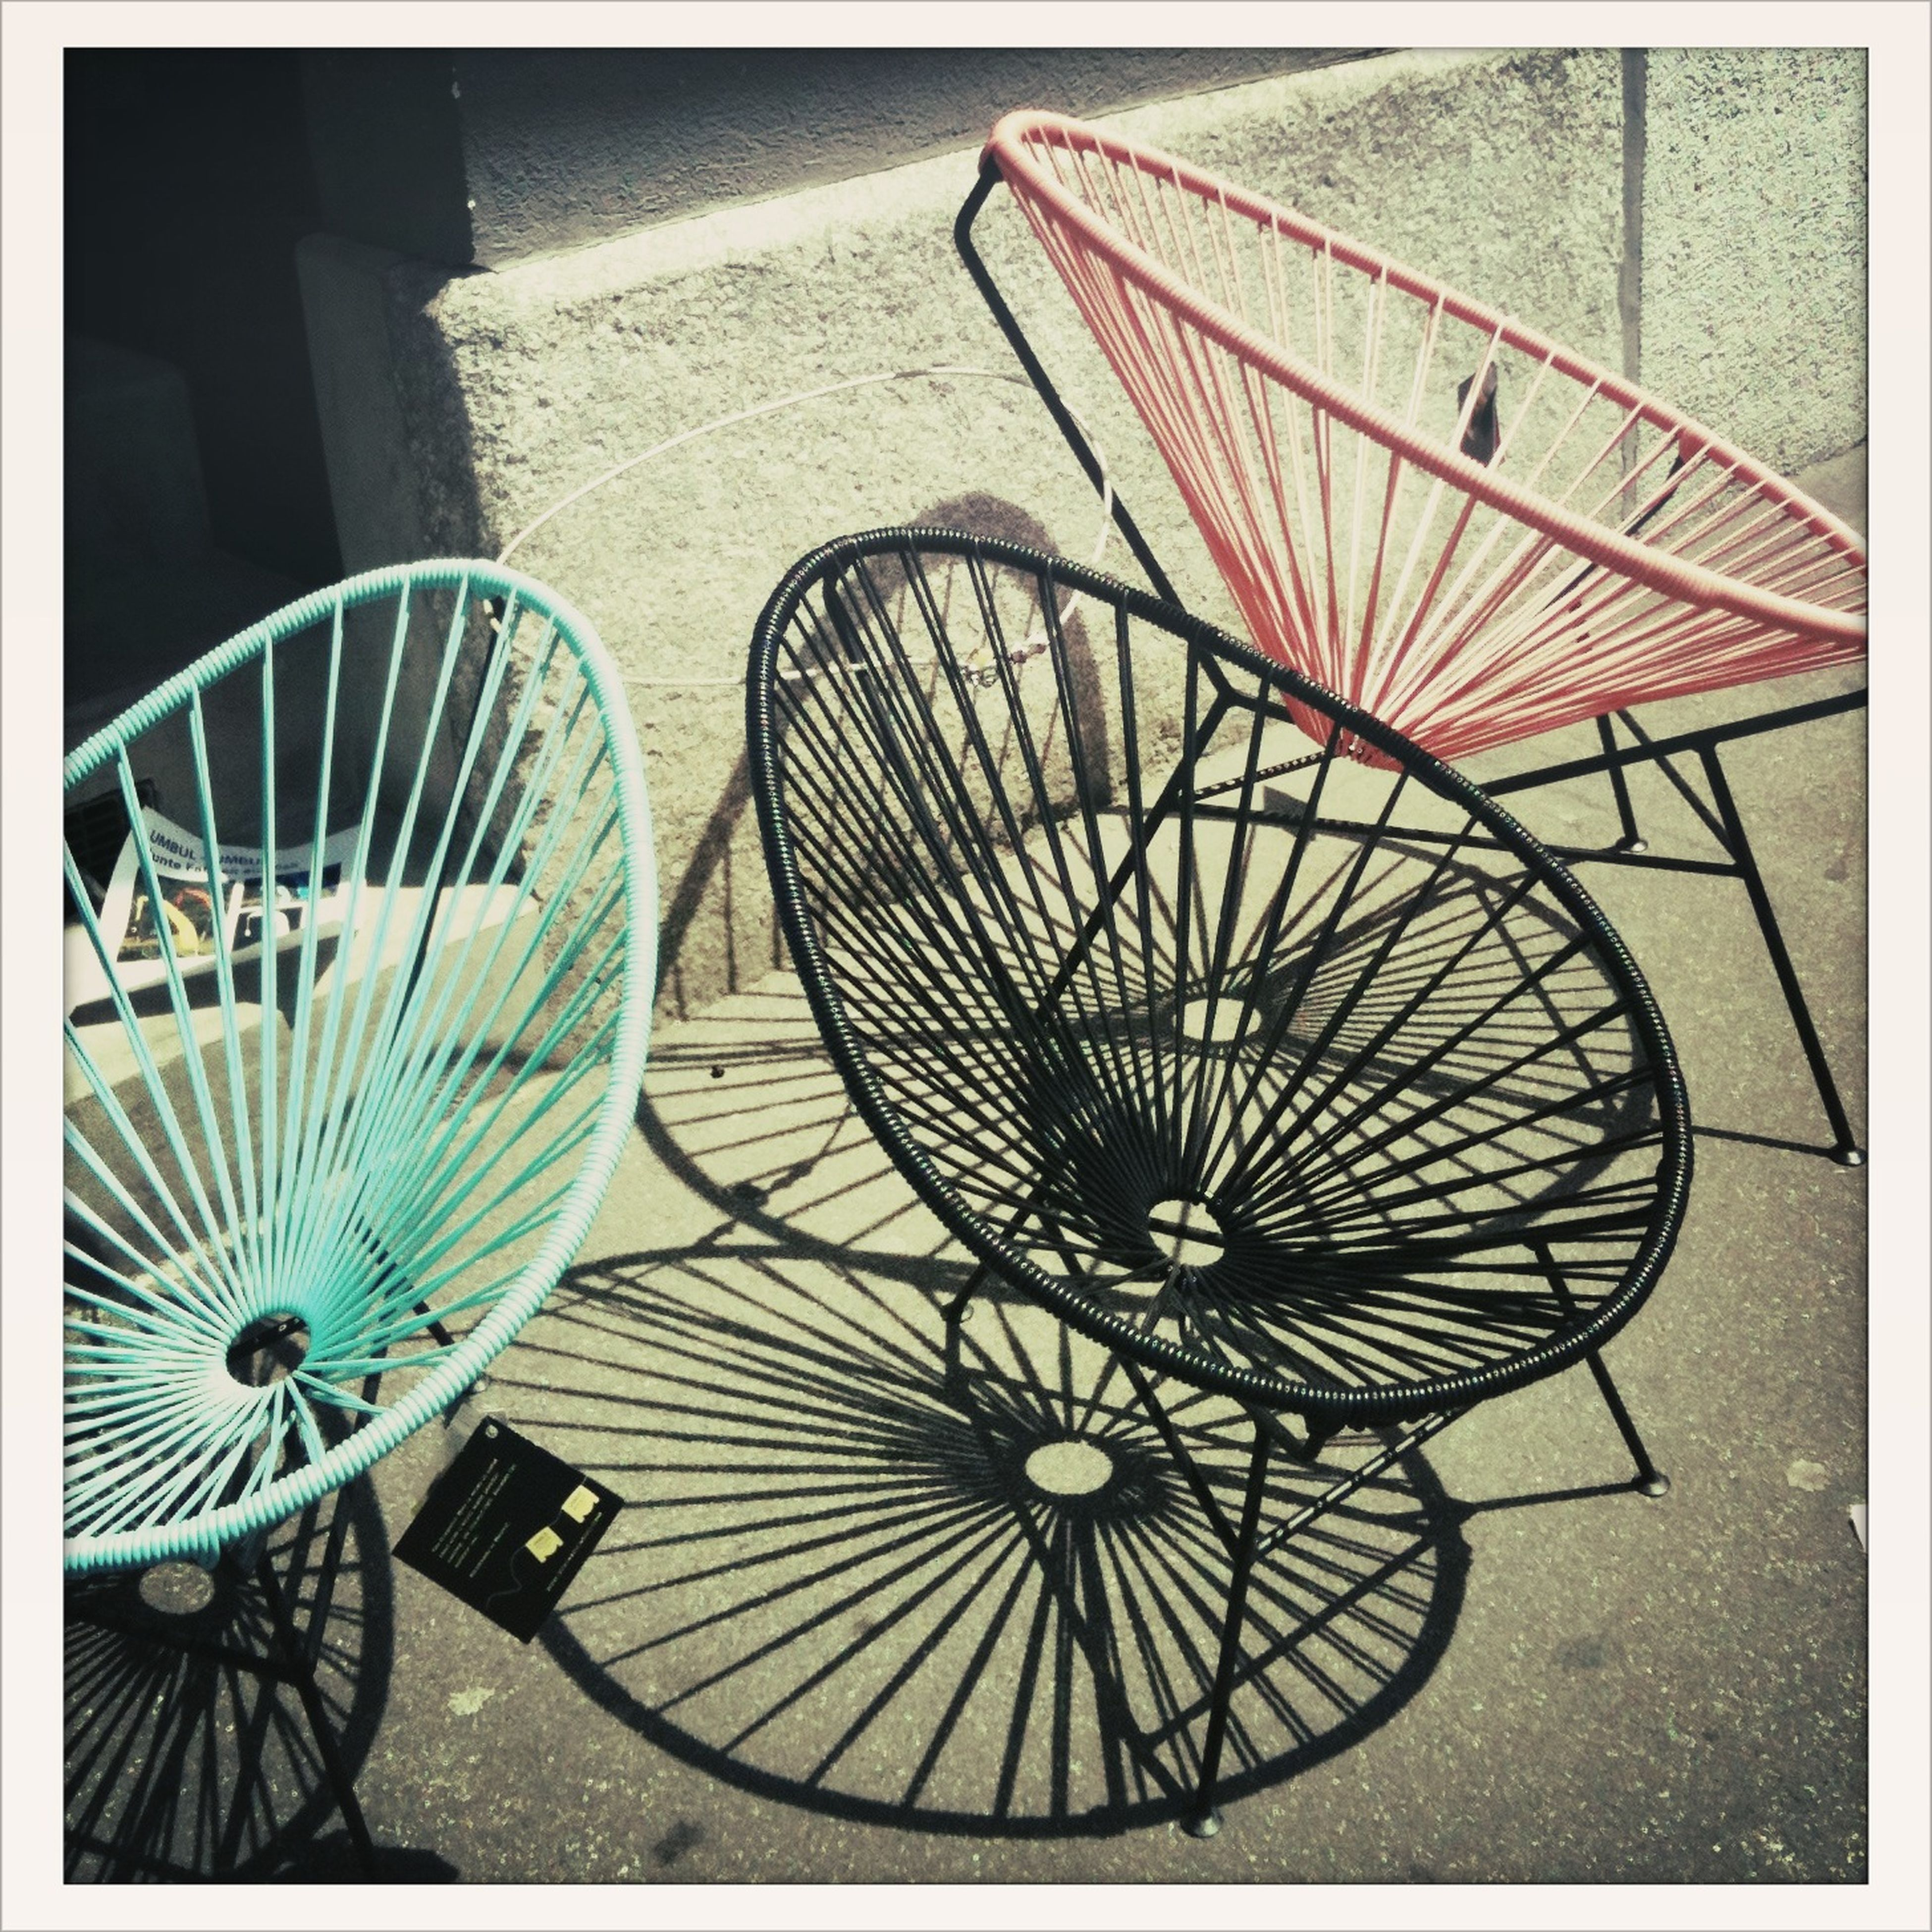 transfer print, auto post production filter, absence, bicycle, table, still life, chair, wheel, high angle view, no people, empty, indoors, sunlight, shadow, day, pattern, seat, stationary, basket, multi colored